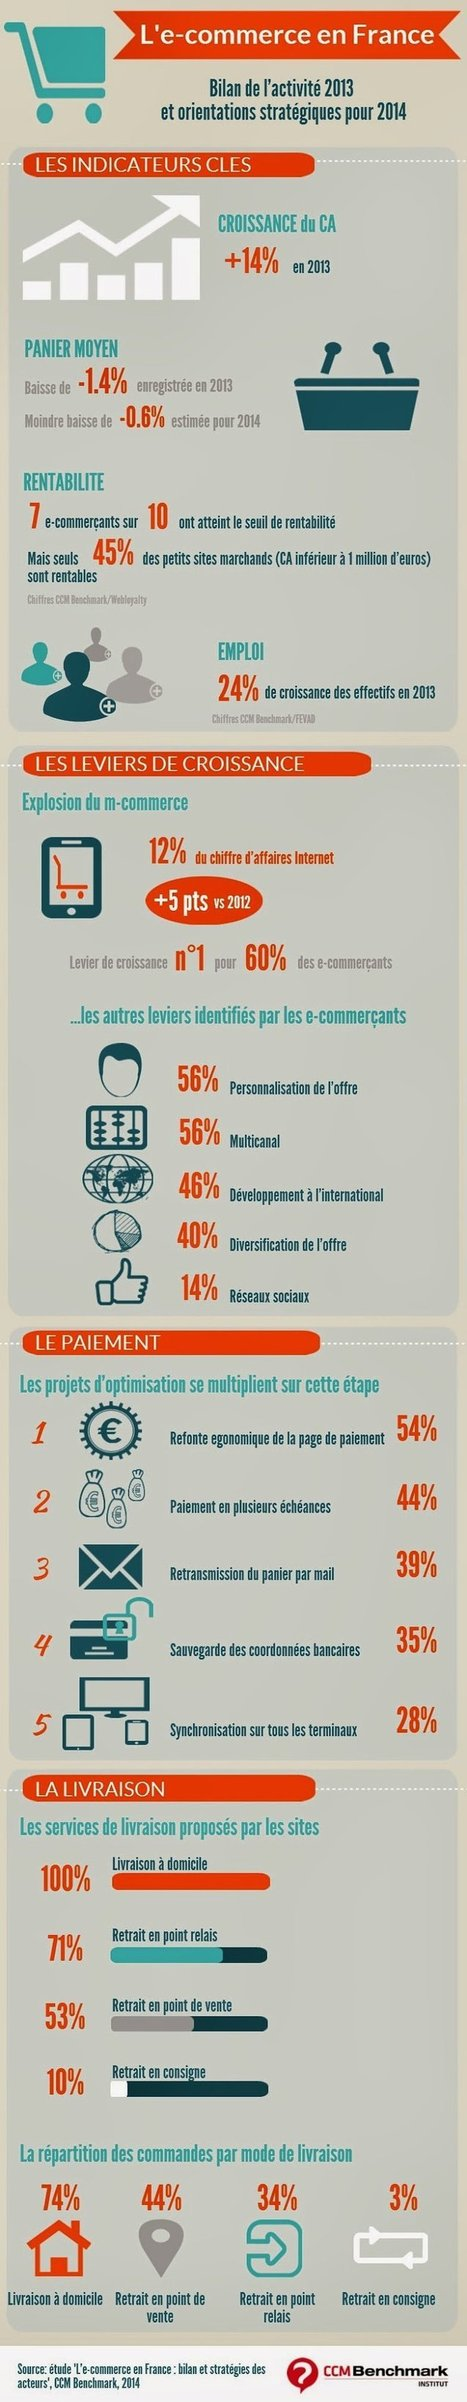 Infographie : l'e-commerce en France | Digitally yours | Scoop.it